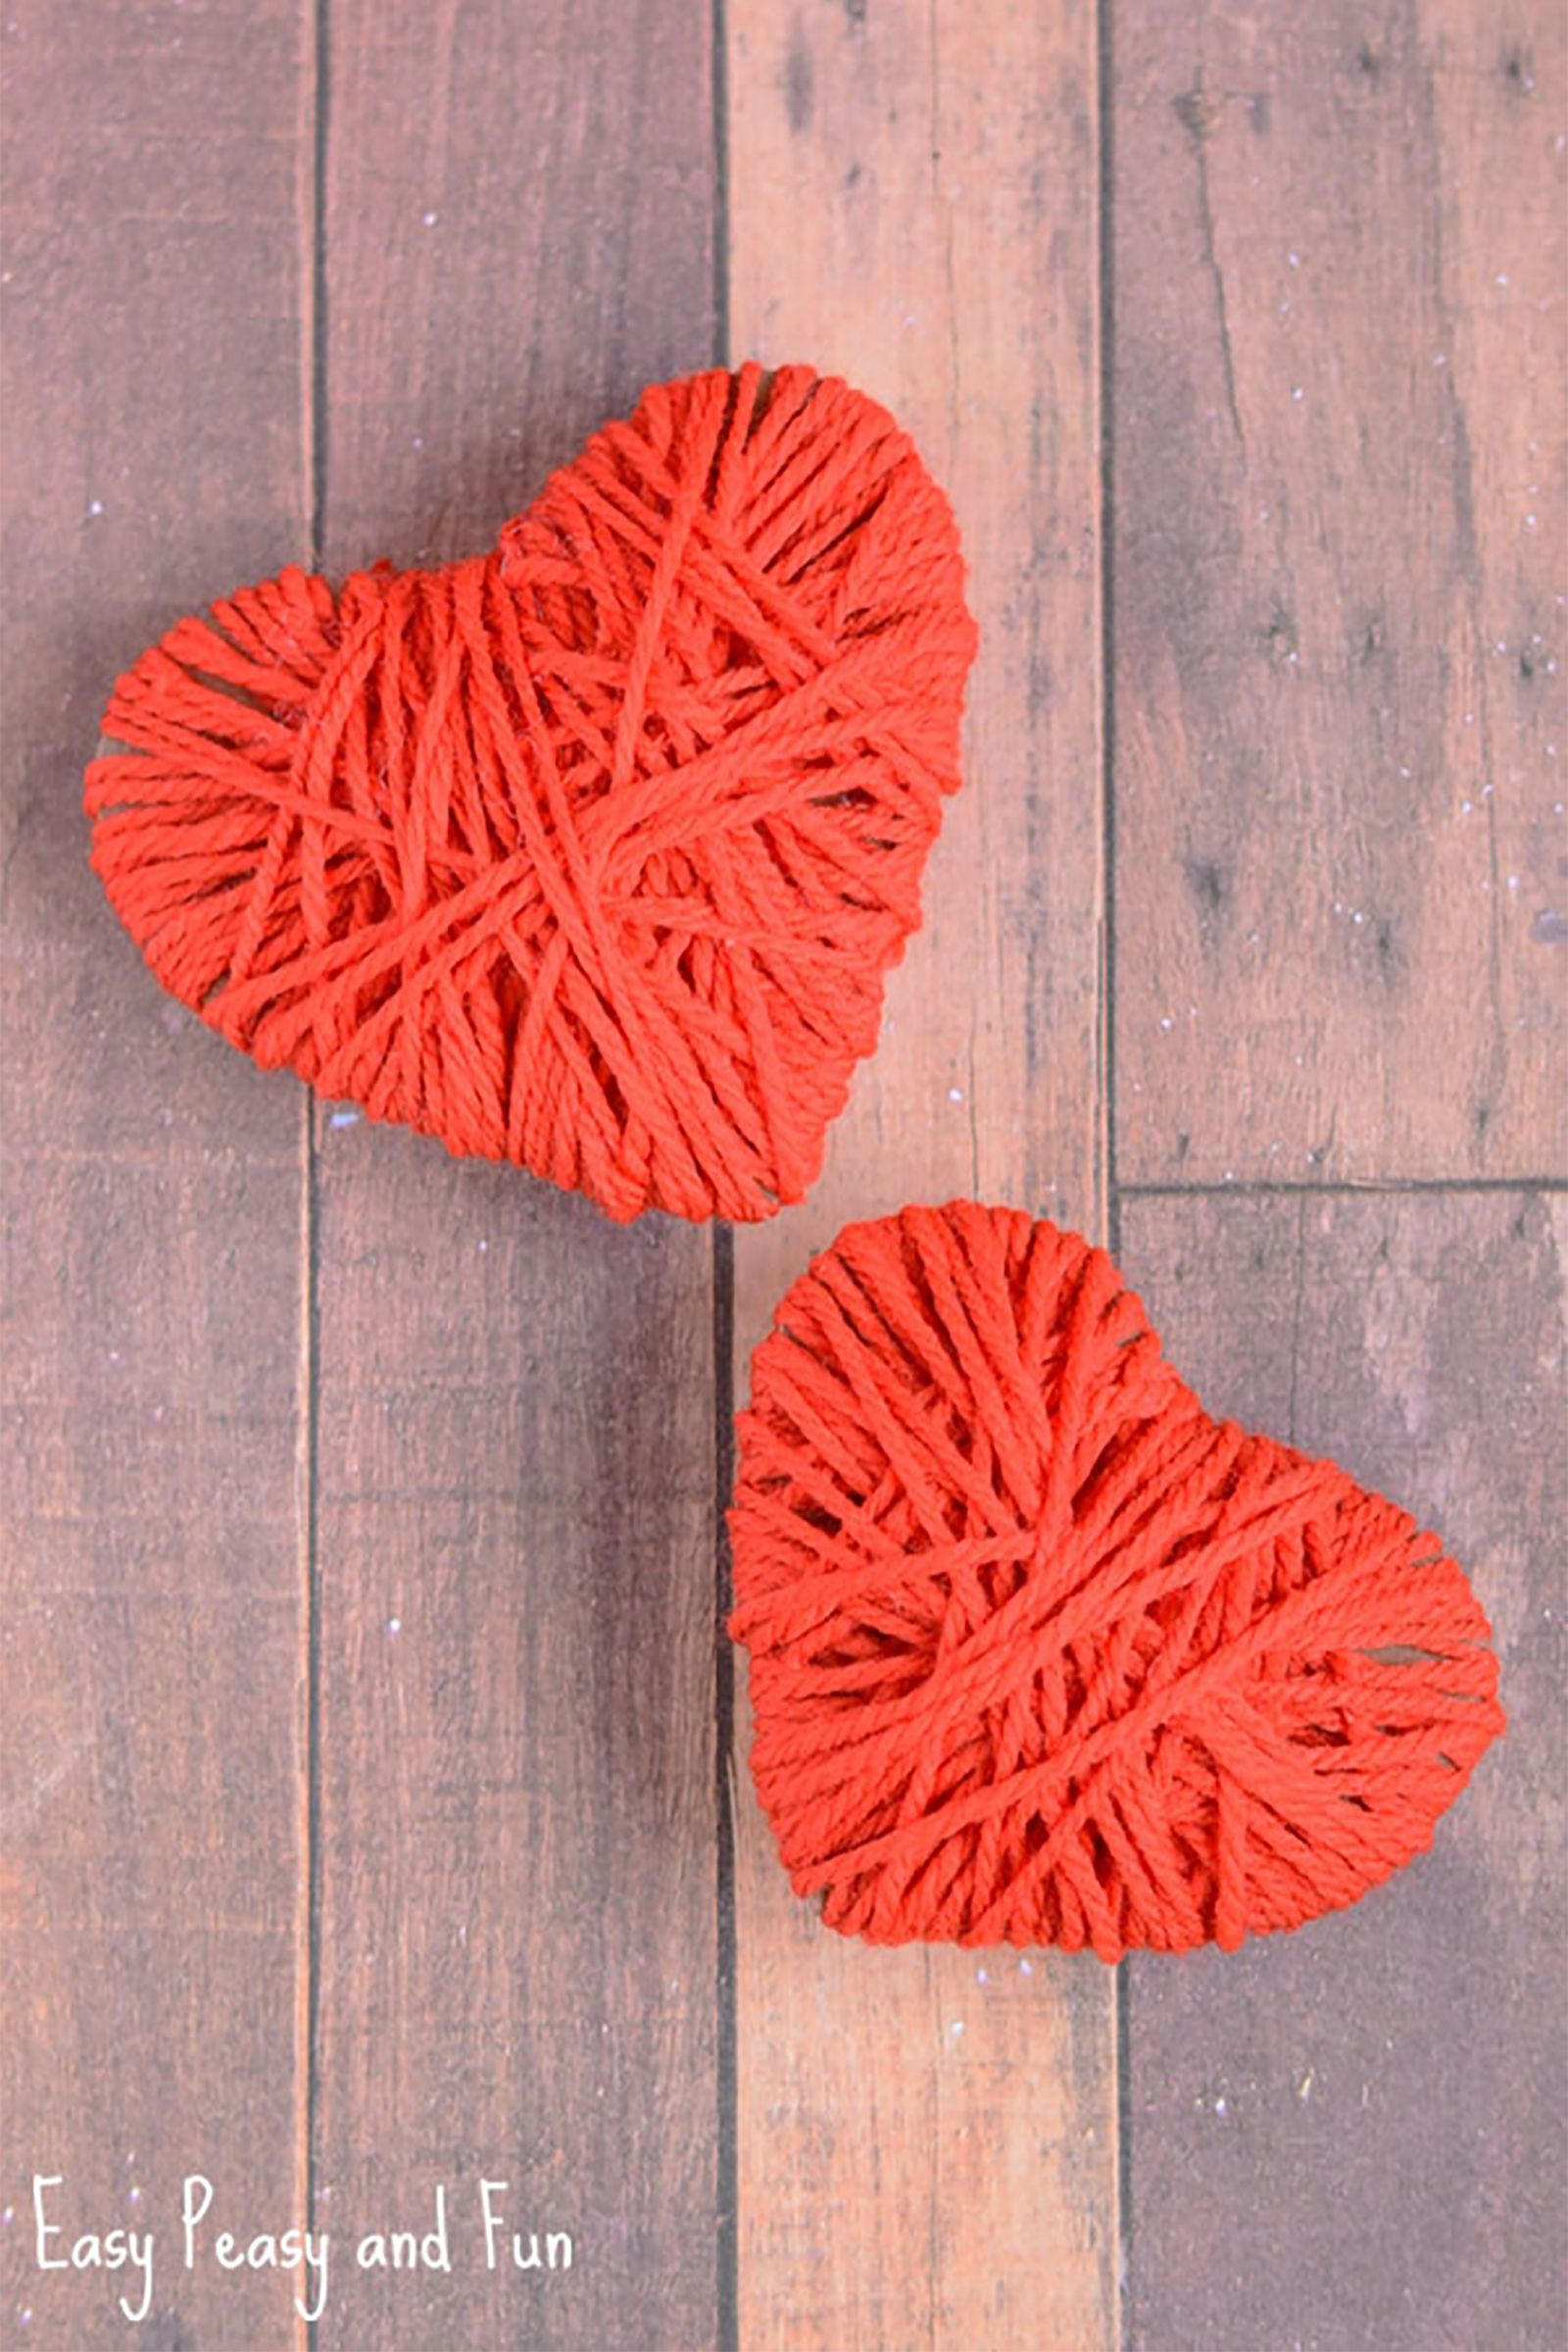 59 Fun Valentine S Day Crafts Diy Valentine Gifts To Craft